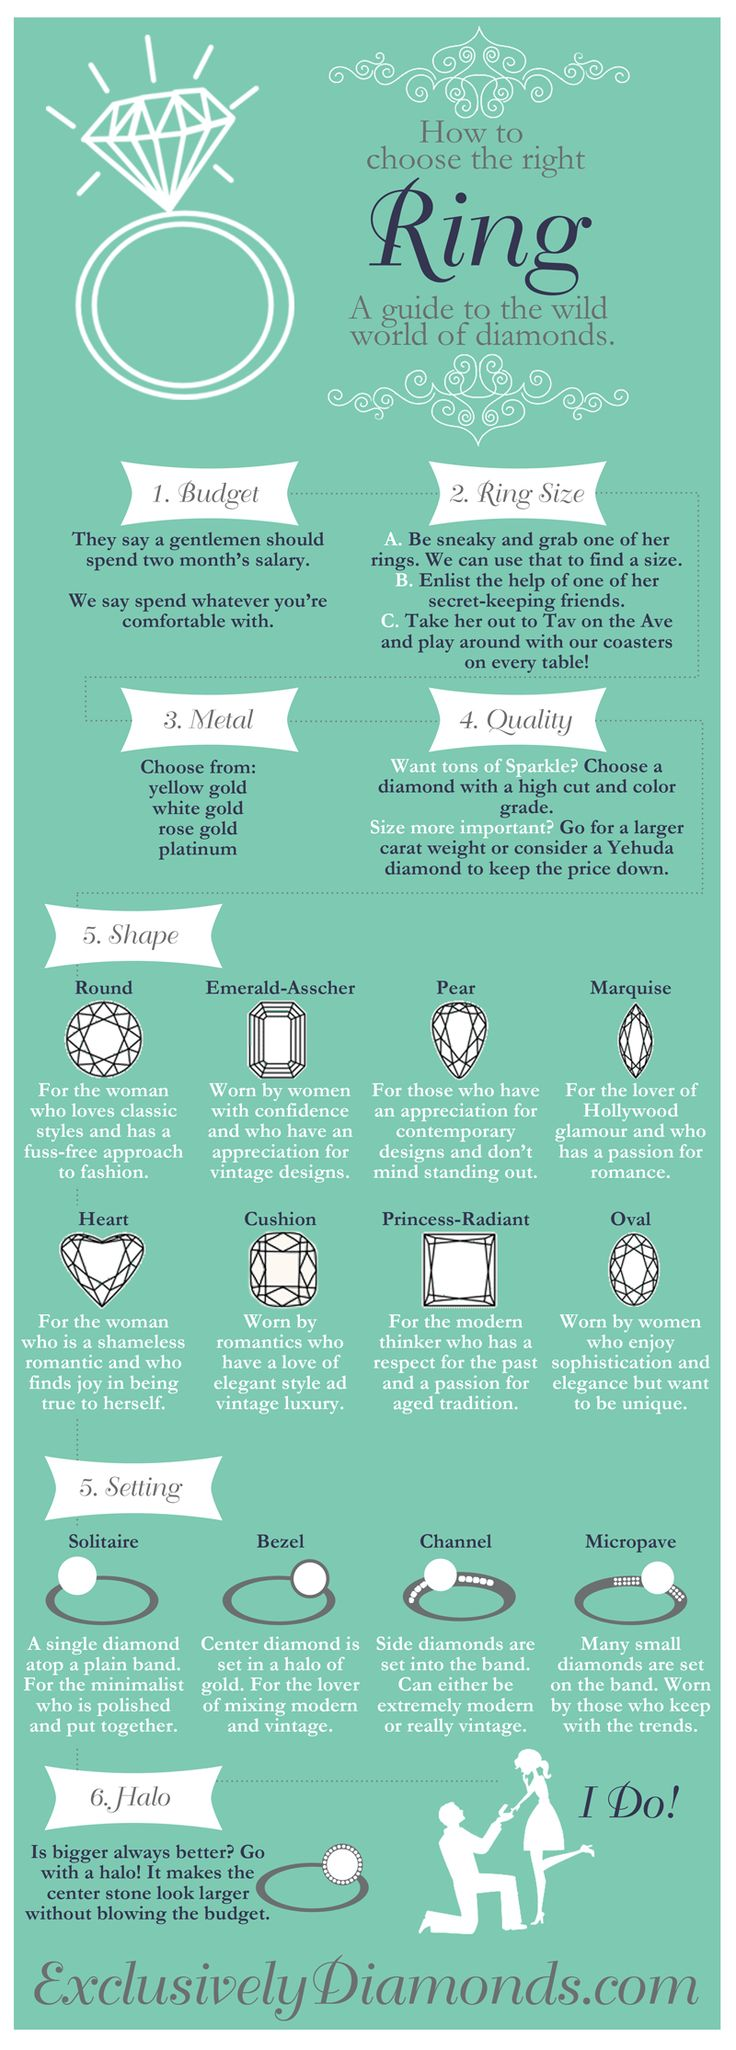 How To Choose The Right Ring